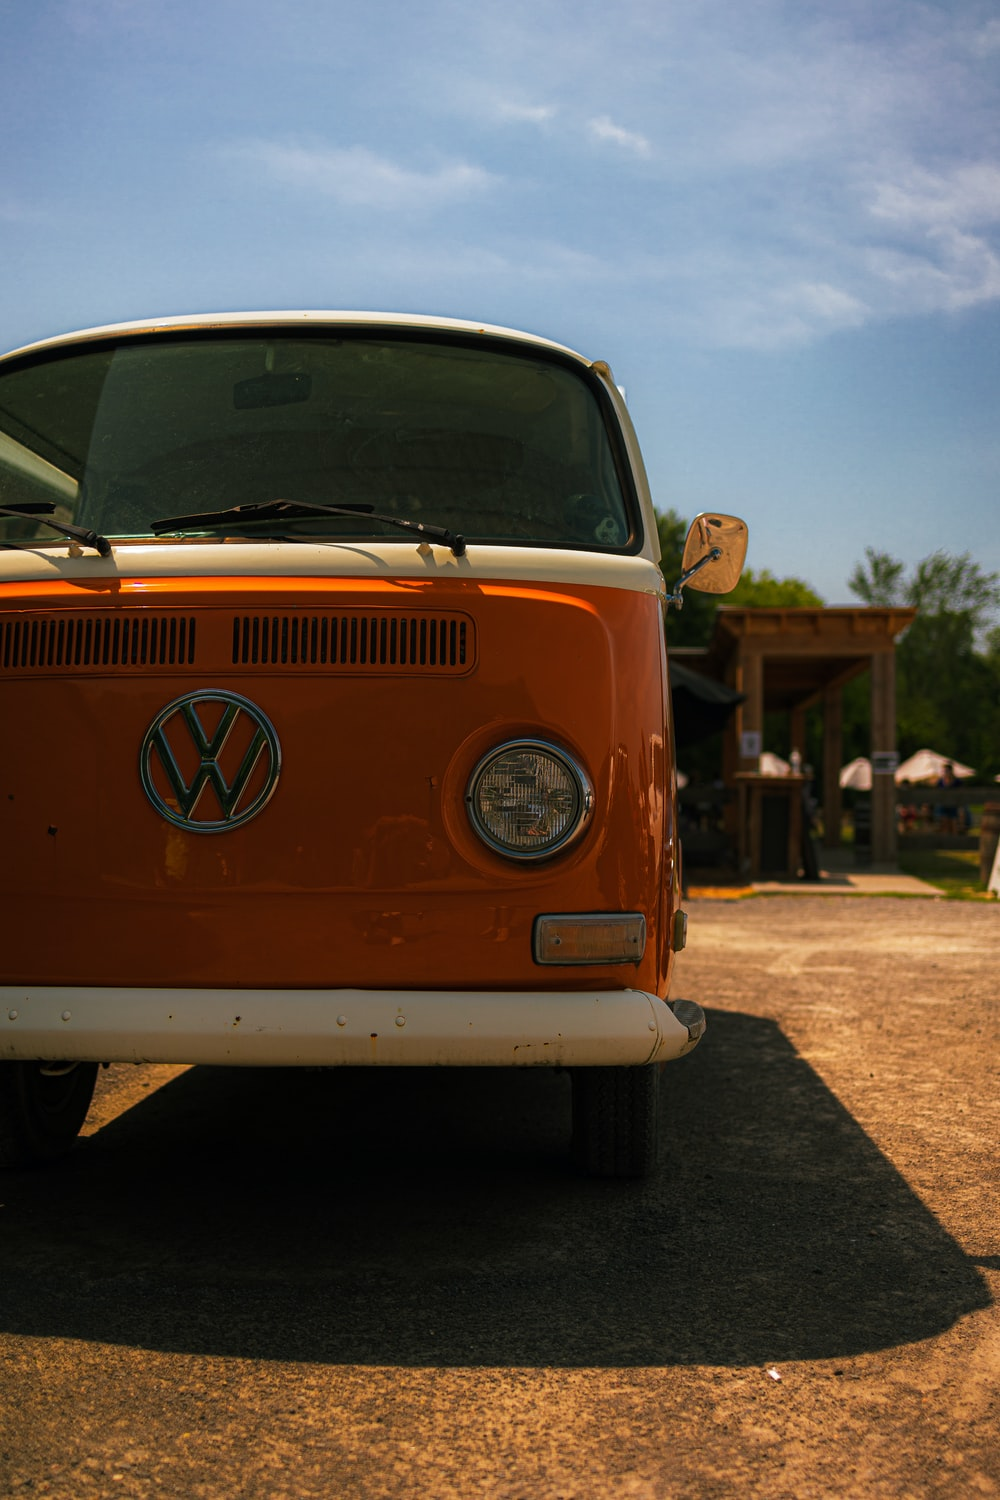 orange and white volkswagen t-2 parked on brown dirt road during daytime